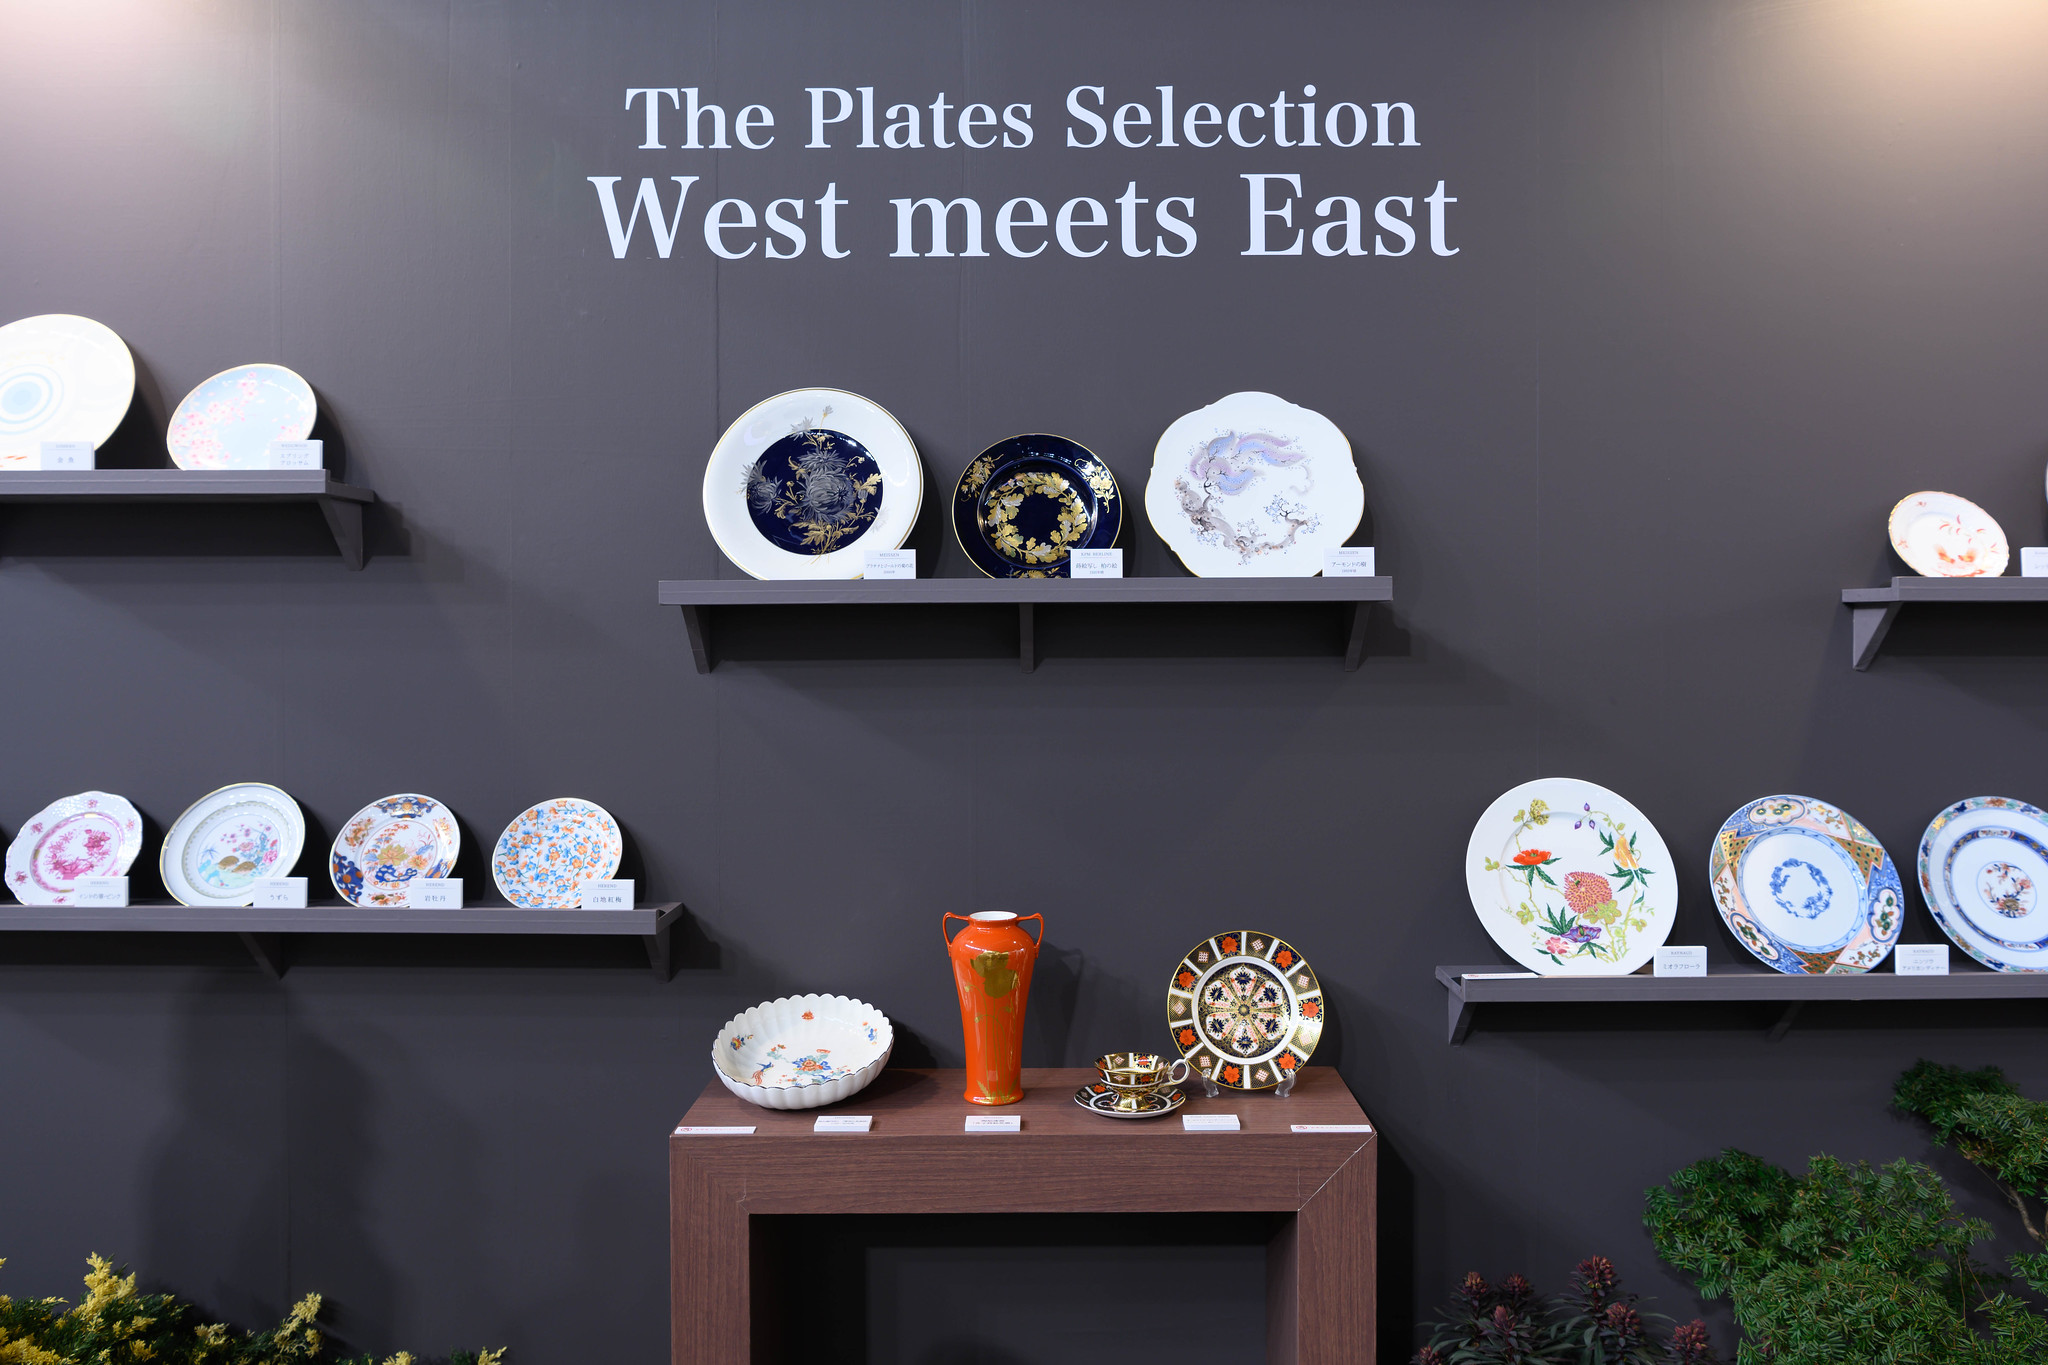 West meets East(正面)